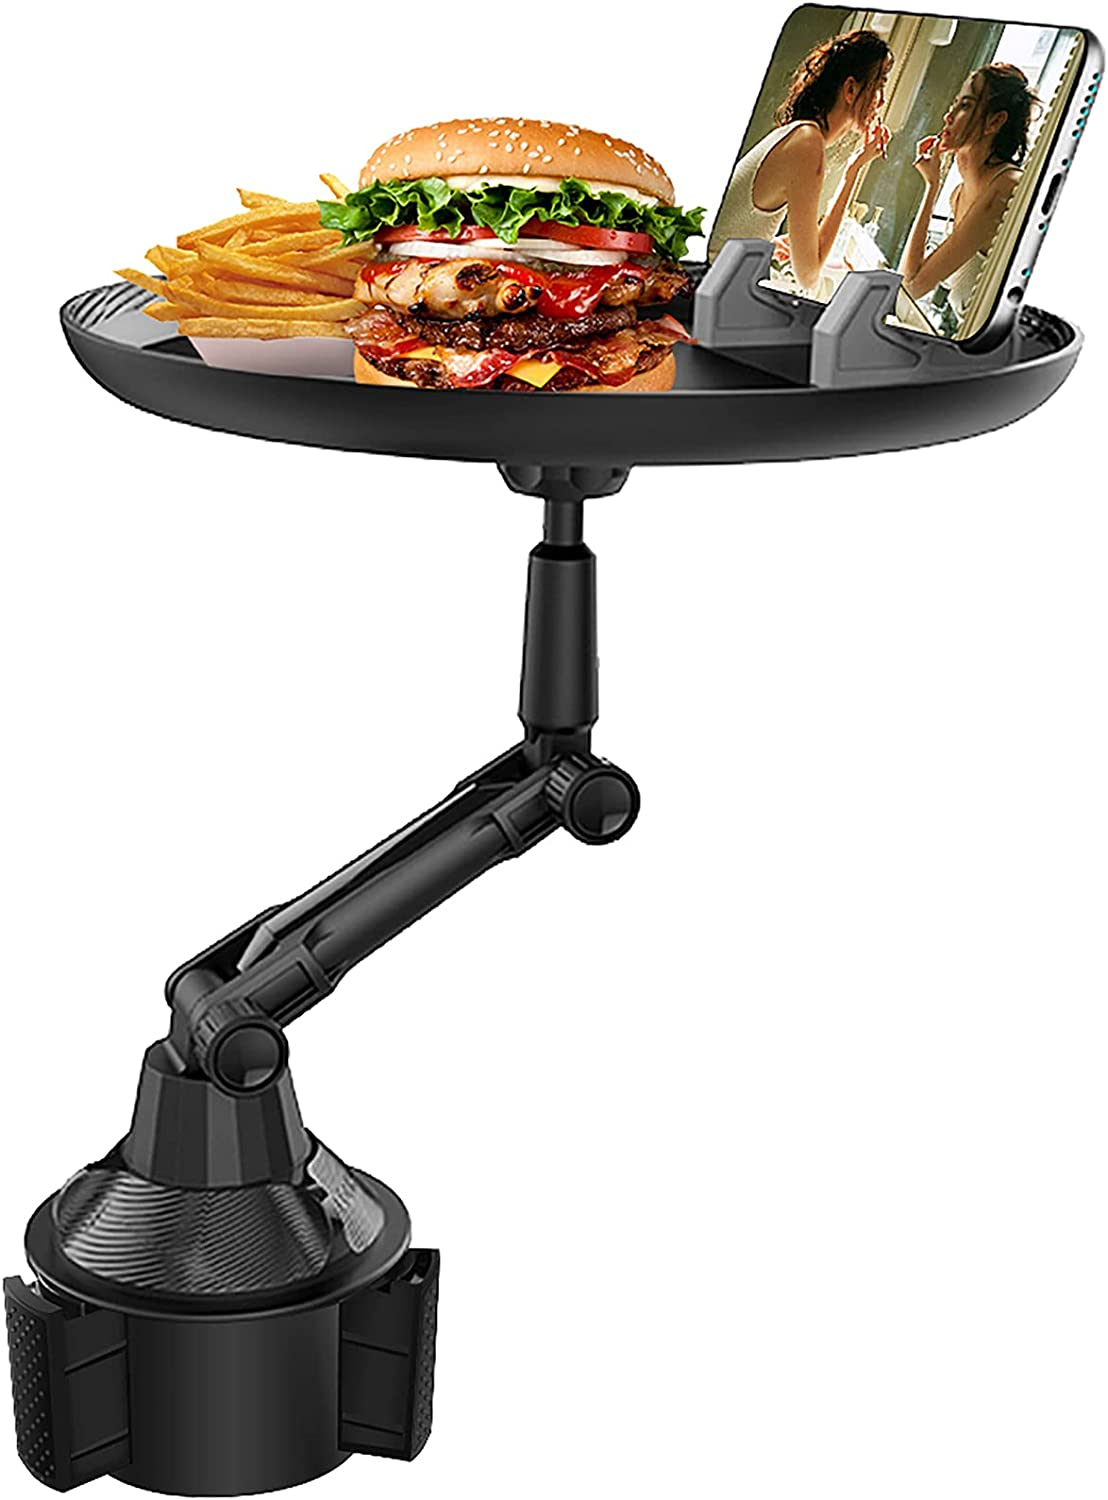 Huzz Car Tray for Eating & Cup Holder Tray - Enjoy Your Food and Stay Organized, Multifunctional Car Food Tray with 360° Rotating Swivel Arm and Adjustable Extendable Base, Car Passenger Tray